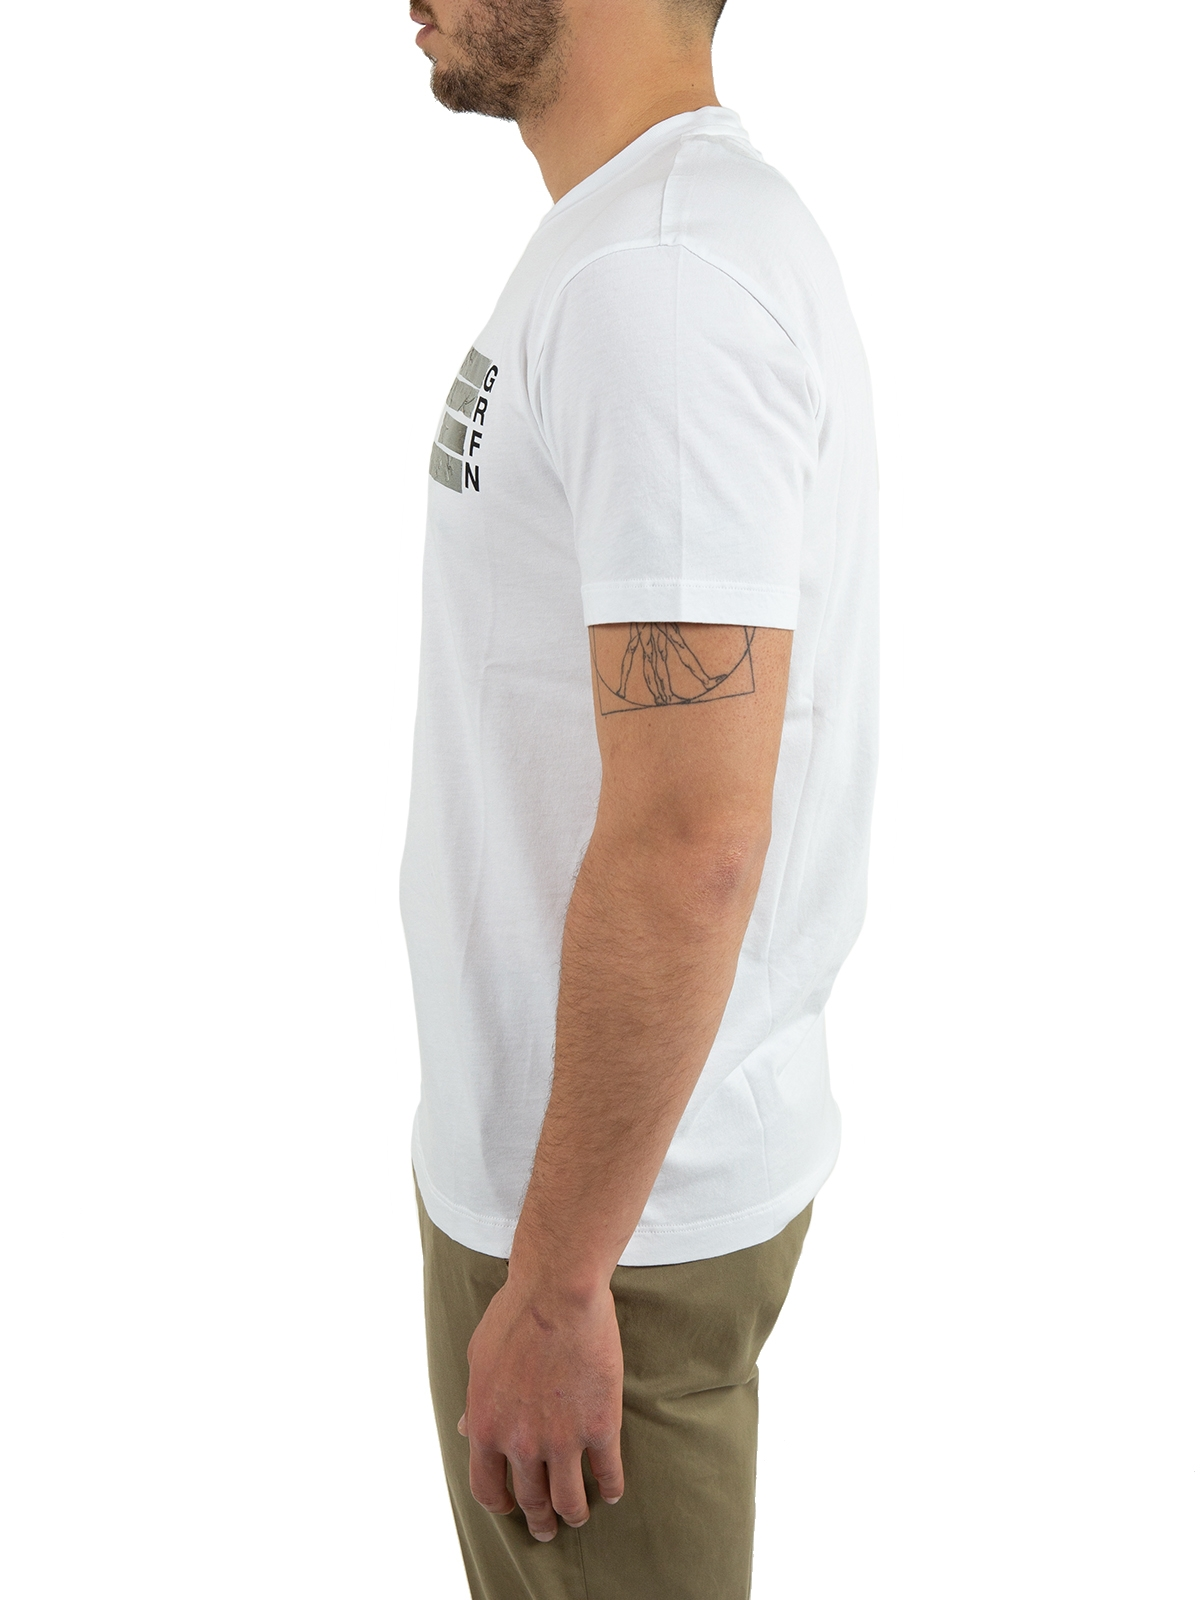 Grifoni T-shirt GE180016S 76